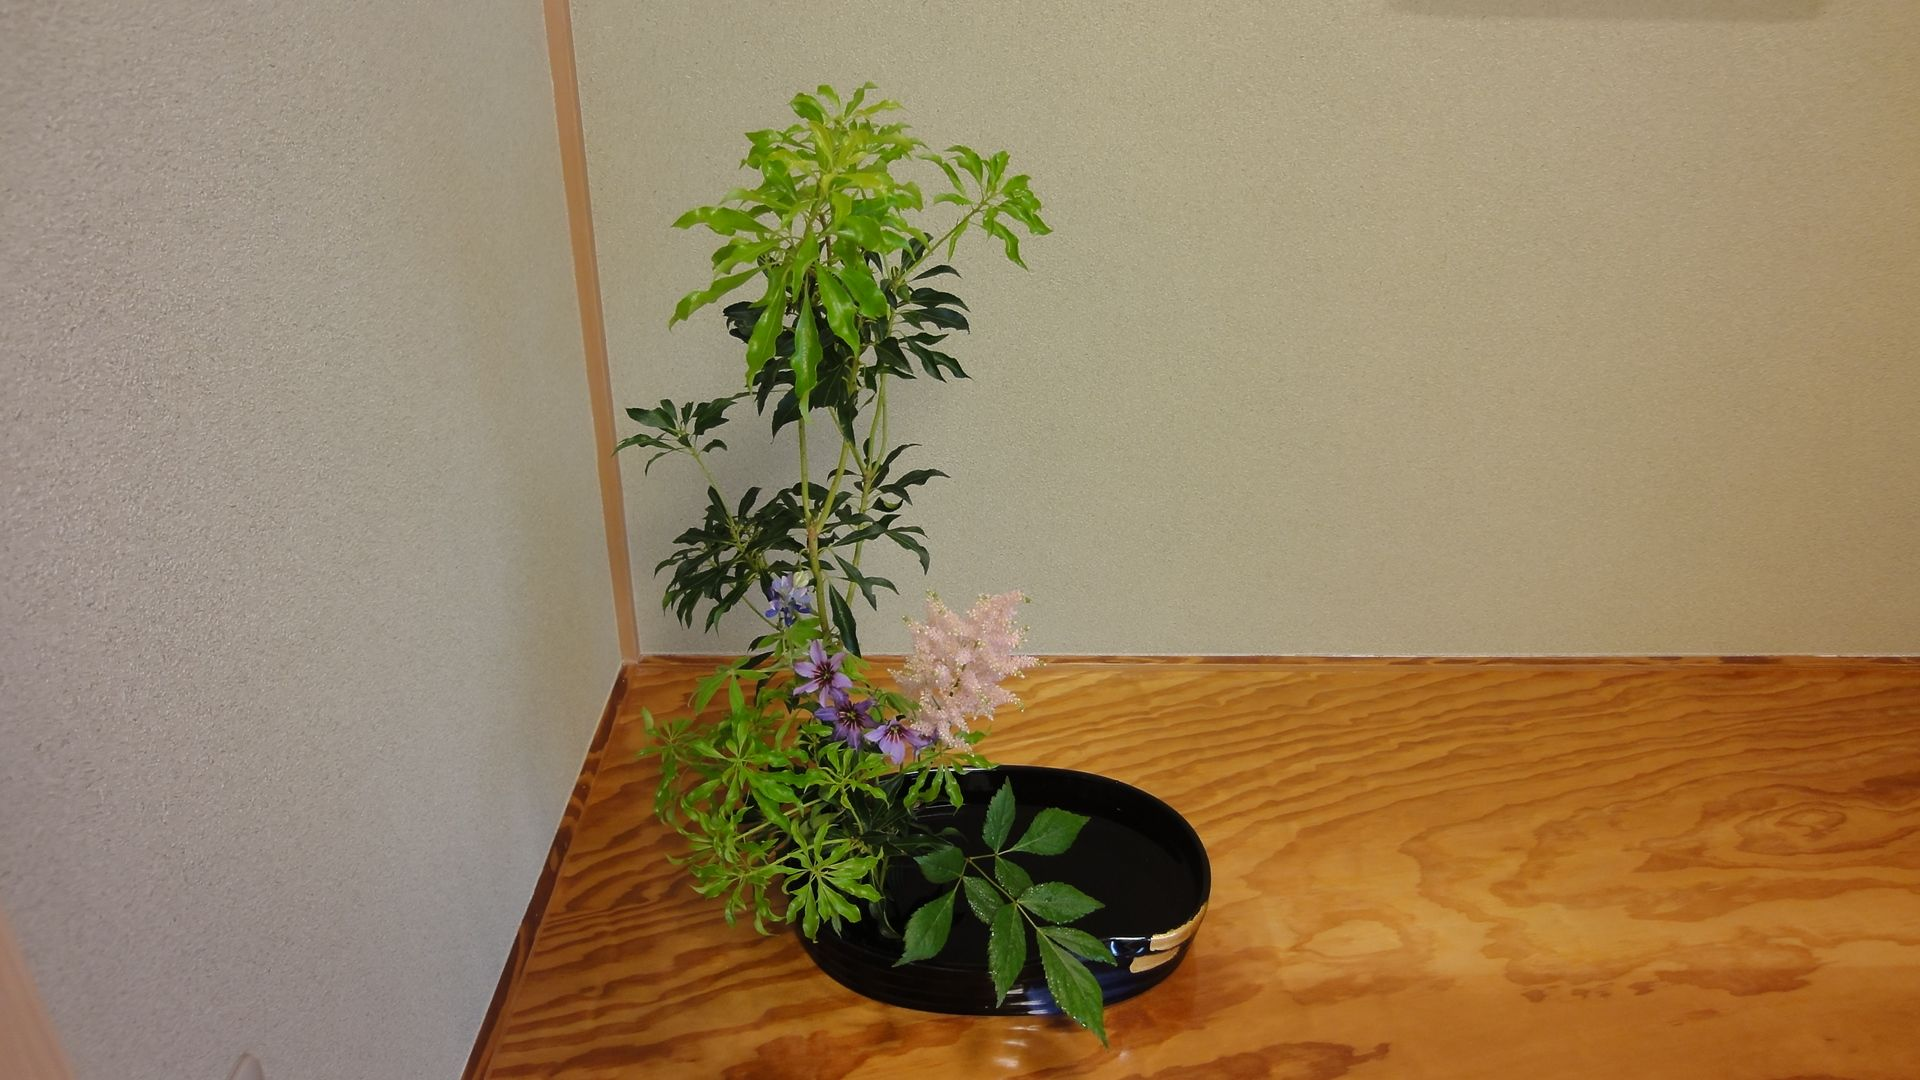 In kado (Ikebana, Japanese flower arrangement), more important than students' proficiency in arranging flowers is their ability to use their mind and all five senses to express with flowers what is in their heart in its pure state. Flowers: Japanese andromeda, Lupinus, Astilbe and Leucocoryne.